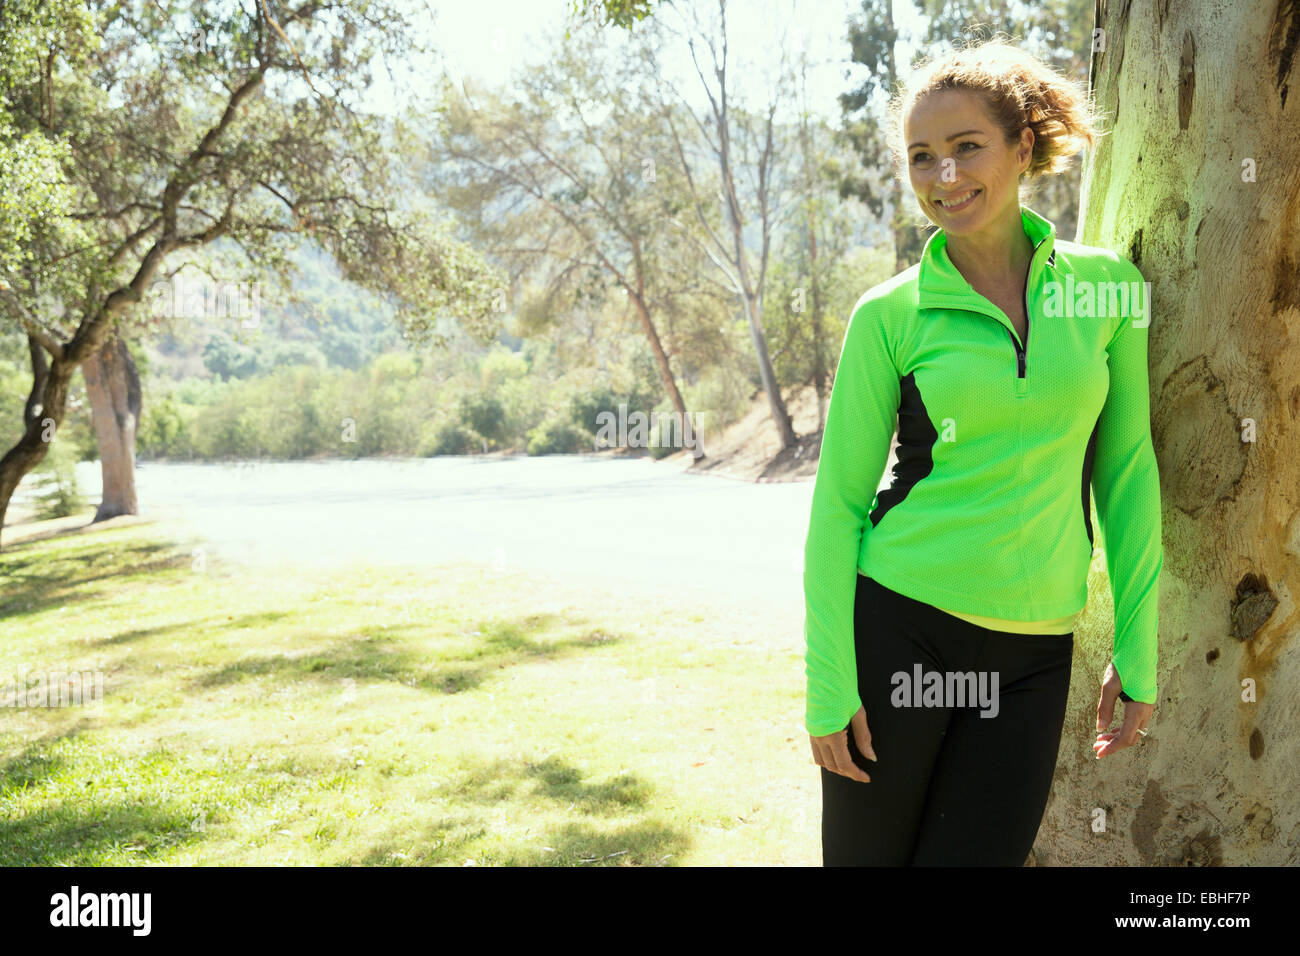 Portrait of mature female runner leaning against tree trunk in park - Stock Image